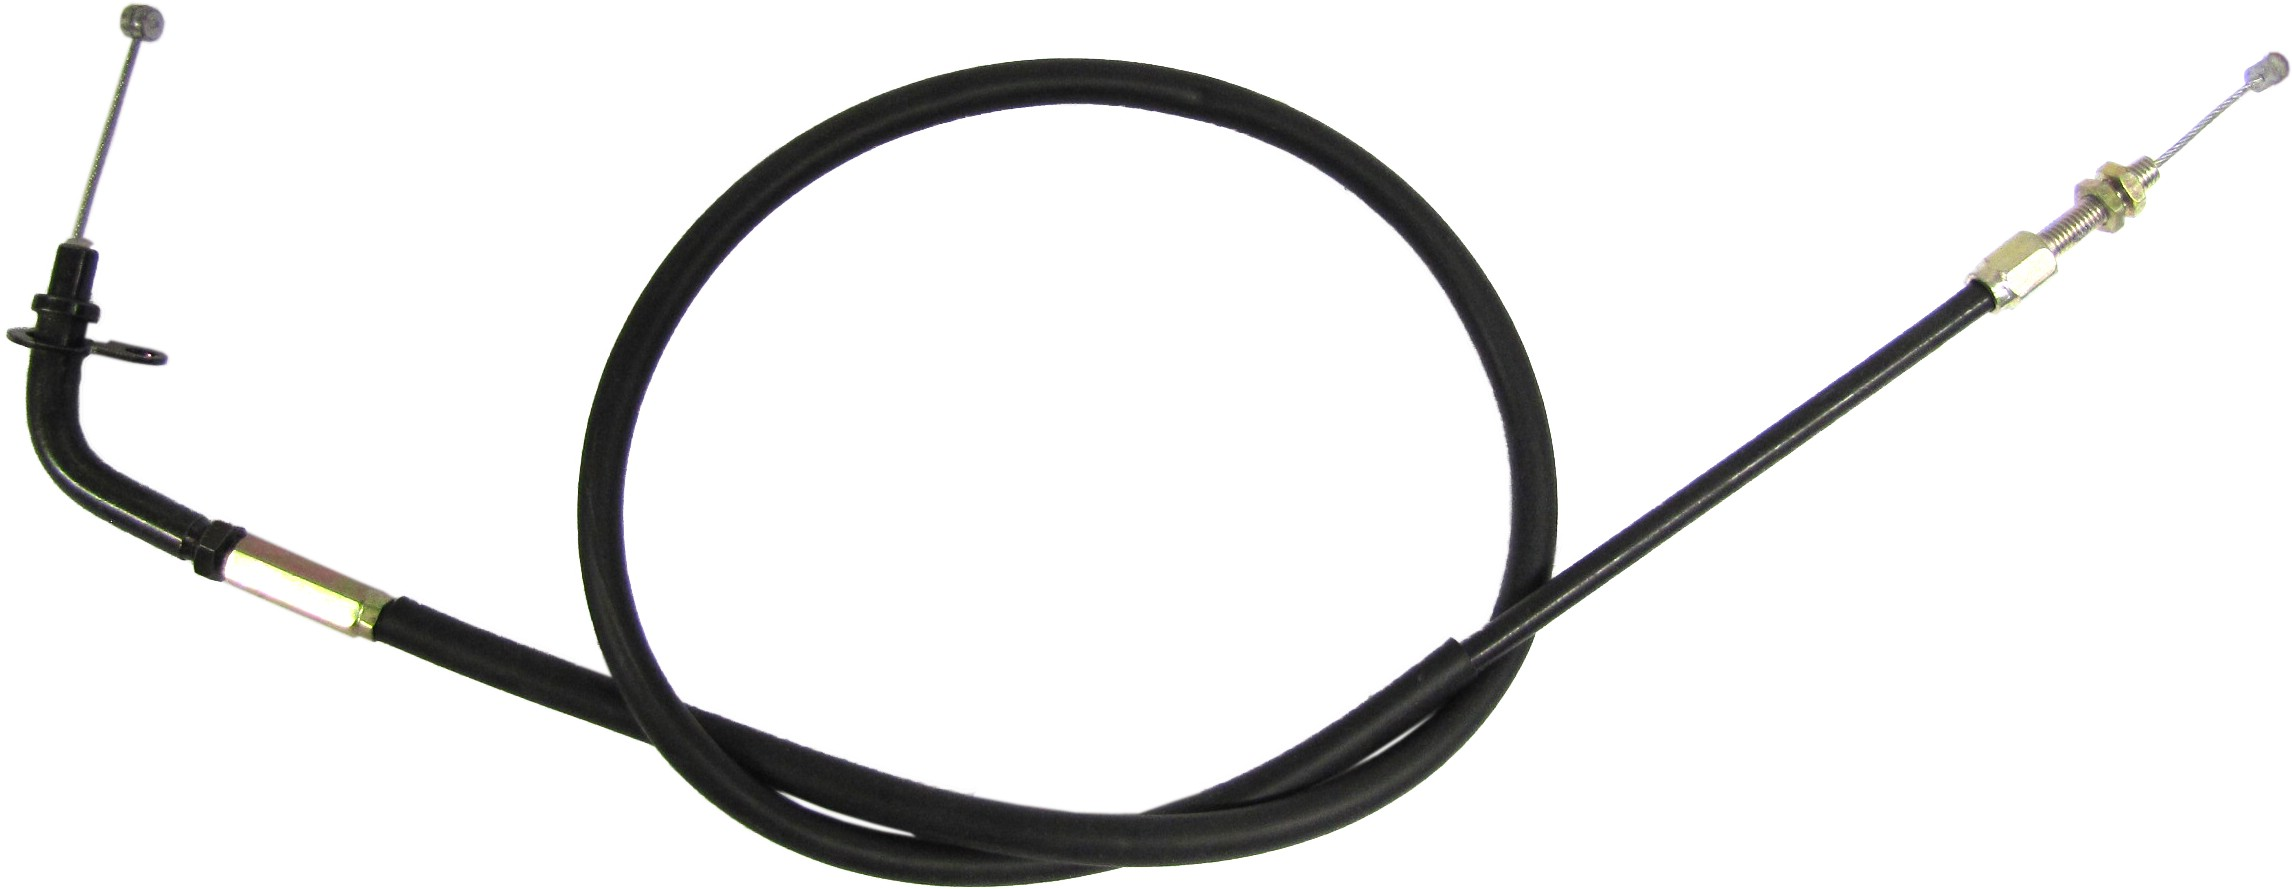 UK Each Suzuki GSF 400 Bandit 1995-1996 Throttle Cable or Pull Cable